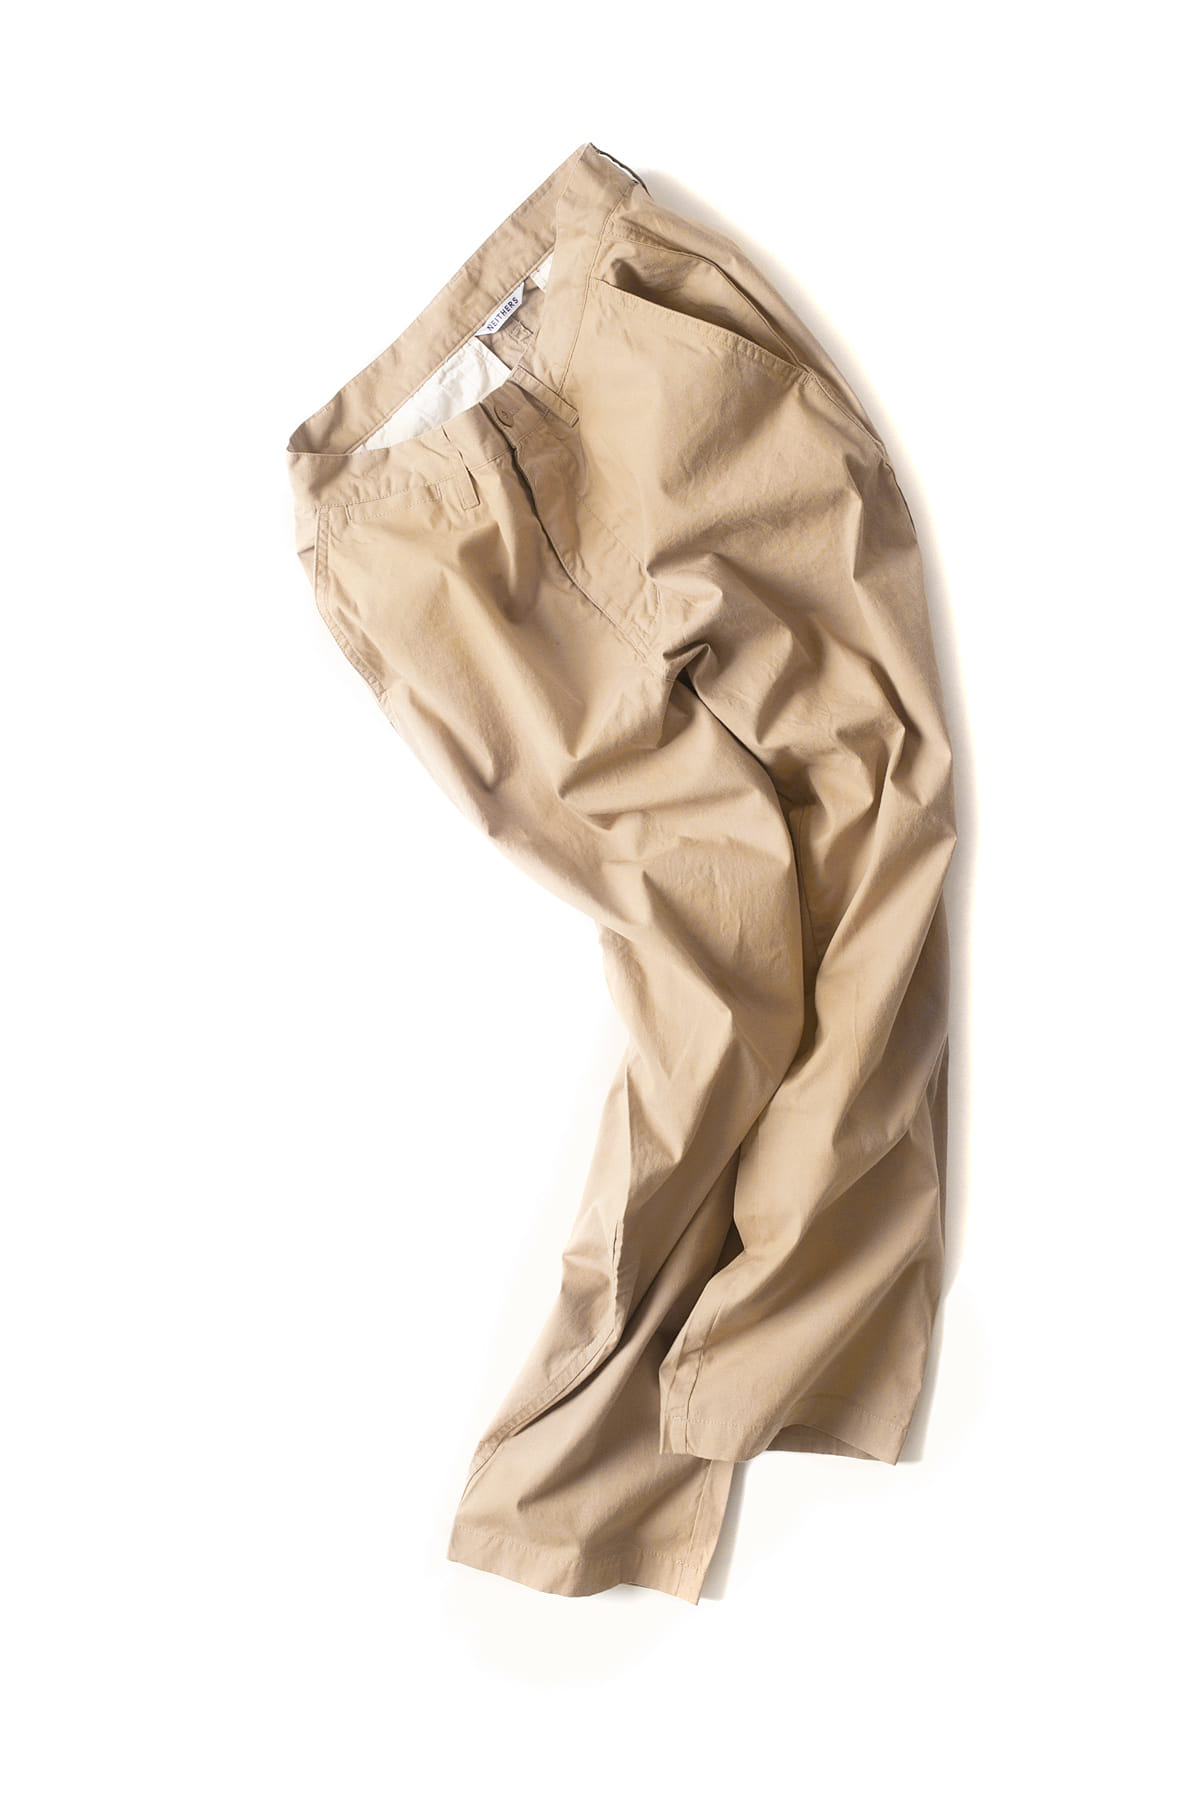 NEITHERS : Cut Off Crop Pants (Beige)